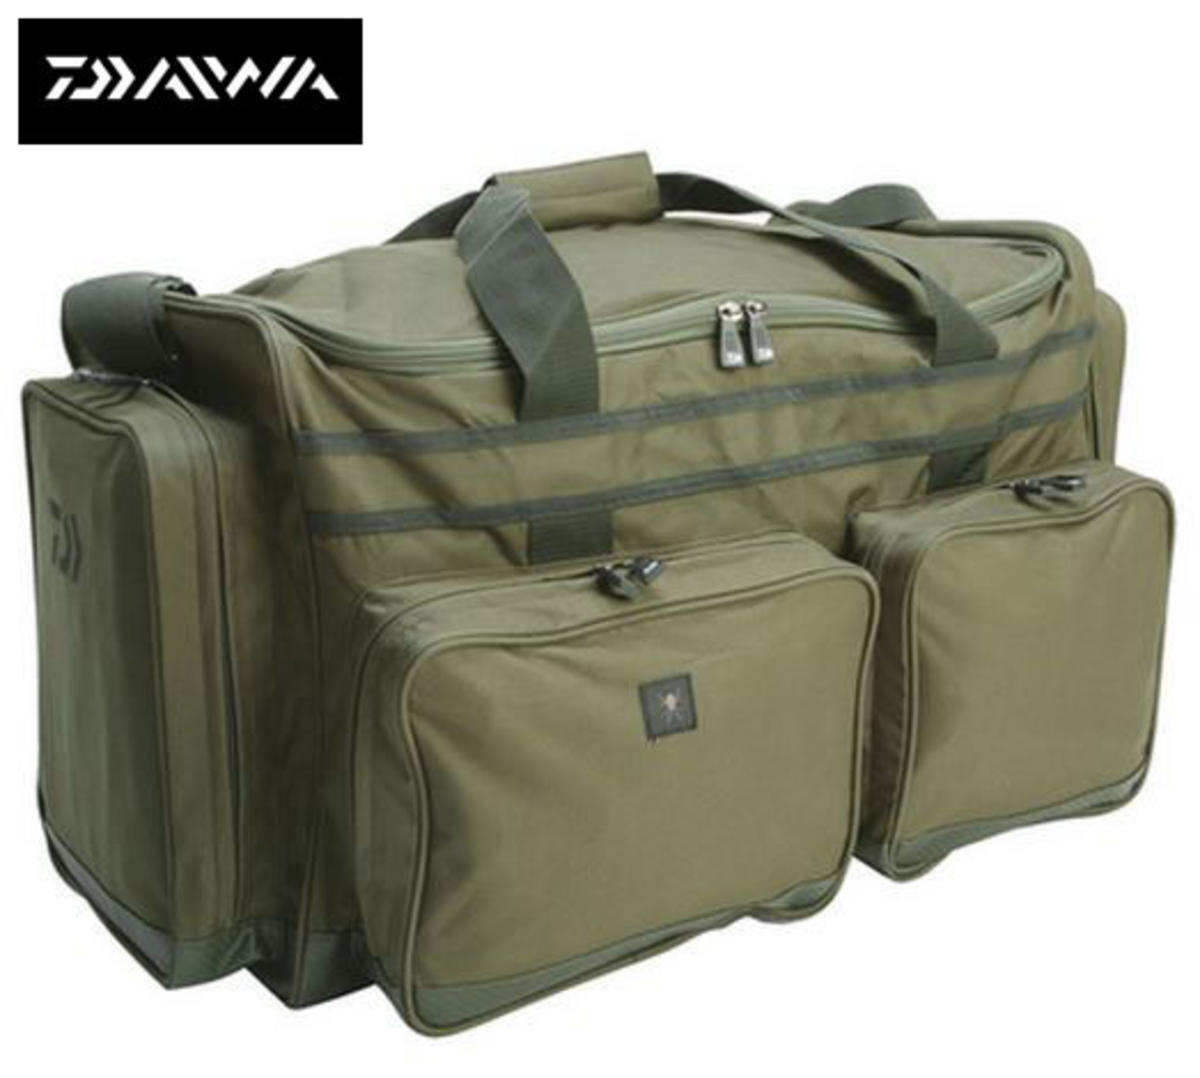 NEW DAIWA BLACK WIDOW 70 LTR FISHING CARRYALL Model No. BWC70L